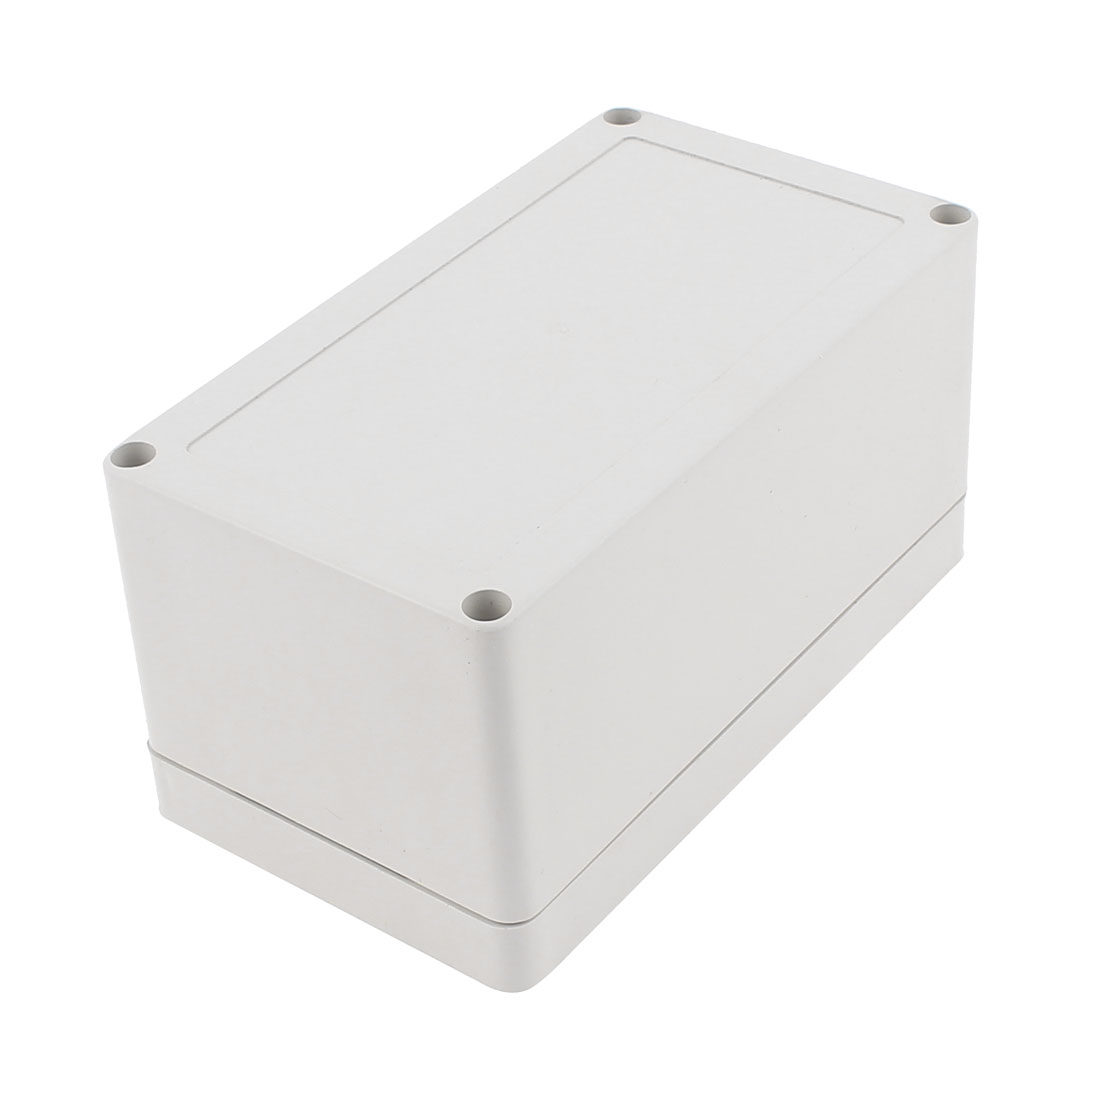 160 x 90 x 80mm Dustproof IP65 Junction Box Terminal Connecting Box Enclosure